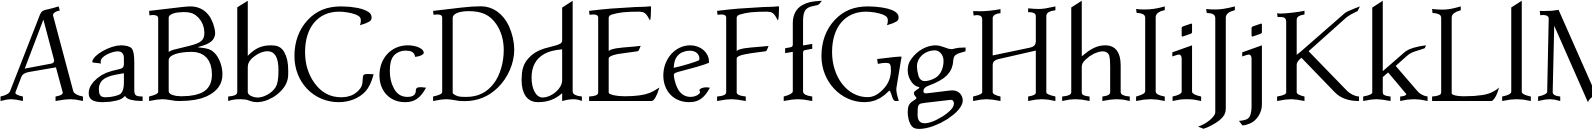 Atlantic Serif Semi Bold